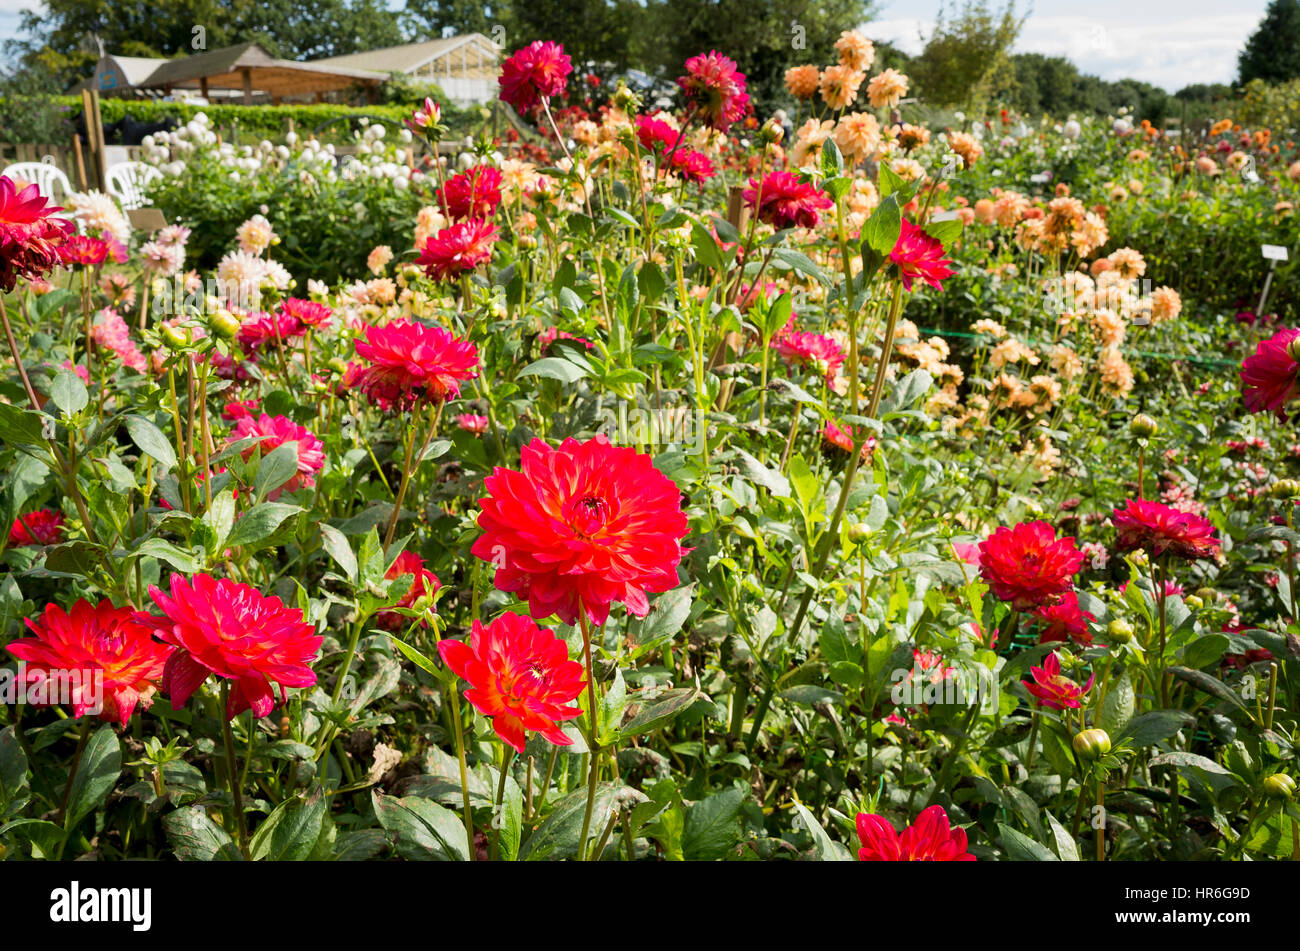 A Nursery field of growing flowering dahlias in Hampshire UK - Stock Image